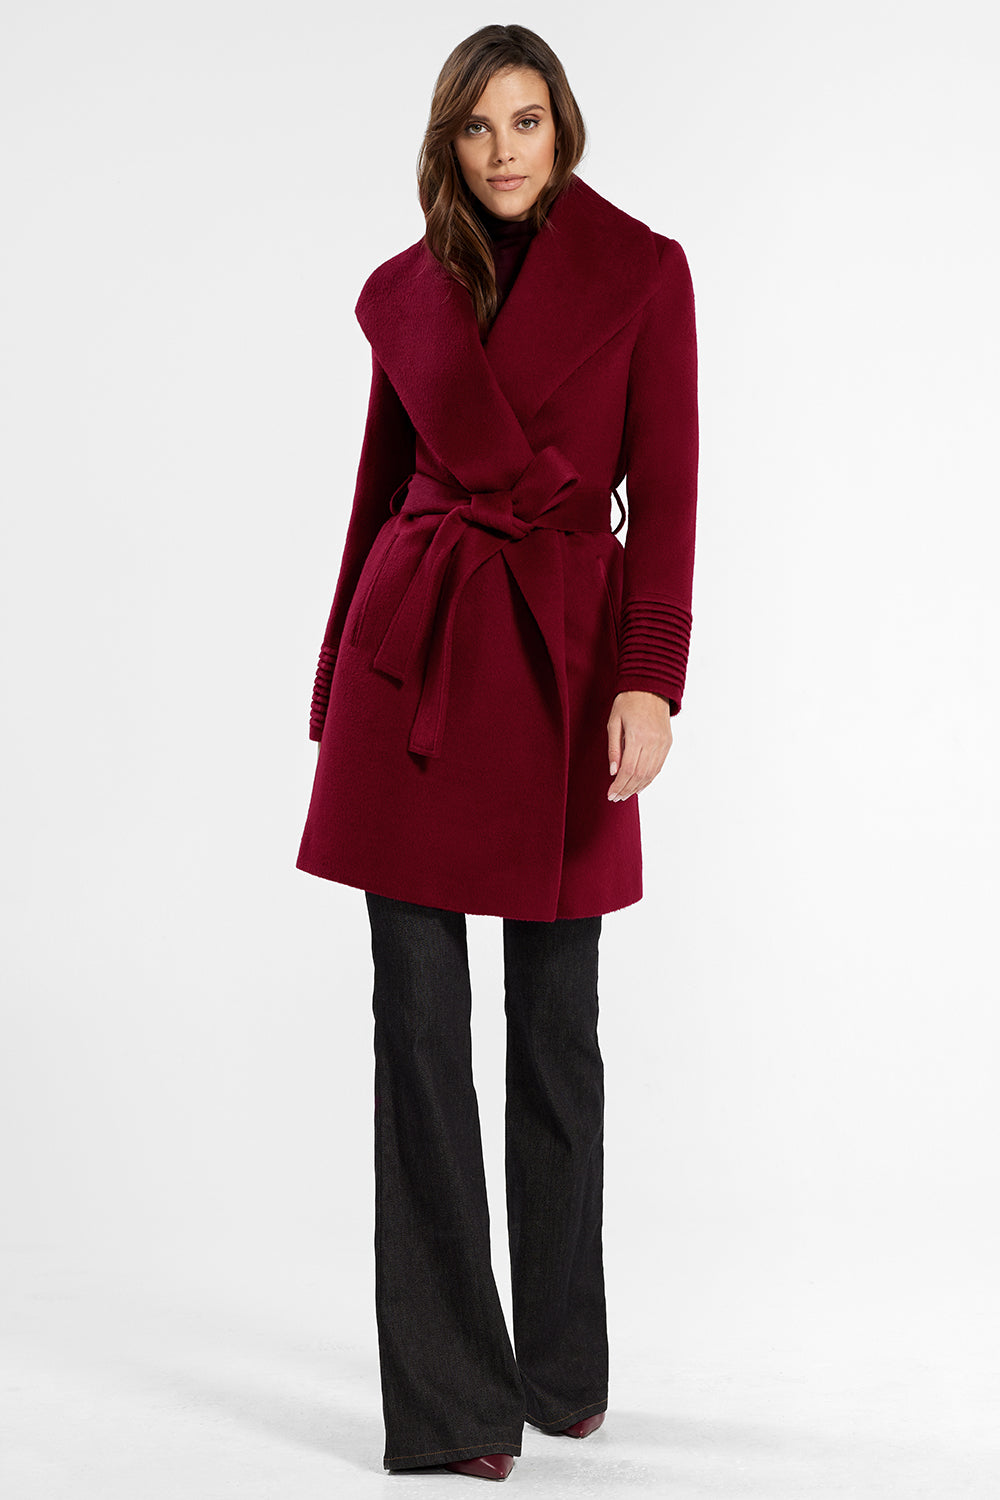 Sentaler Mid Length Shawl Collar Wrap Coat featured in Baby Alpaca and available in Garnet Red. Seen from front.